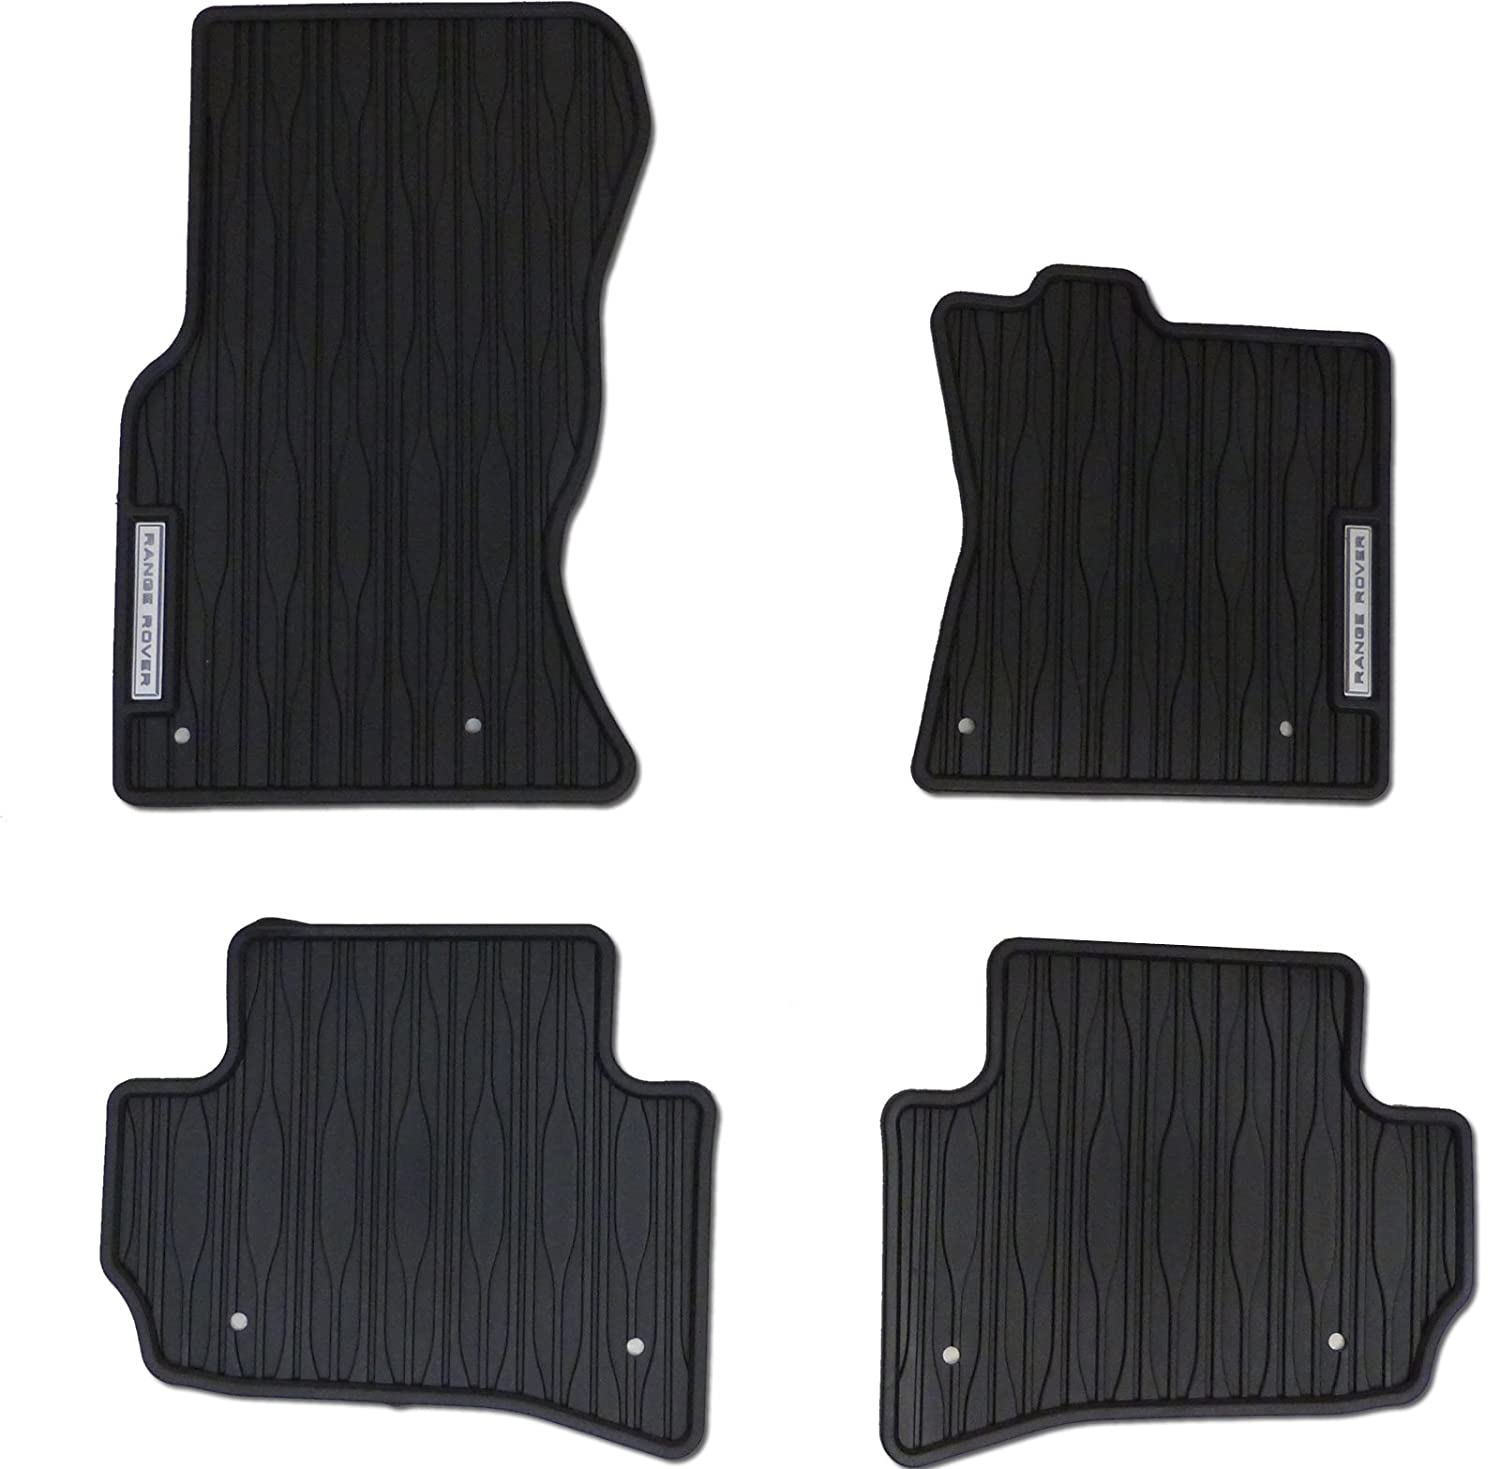 FSW Mx5 2006-2014 Fully Tailored Classic Carpet Car Floor Mats Black